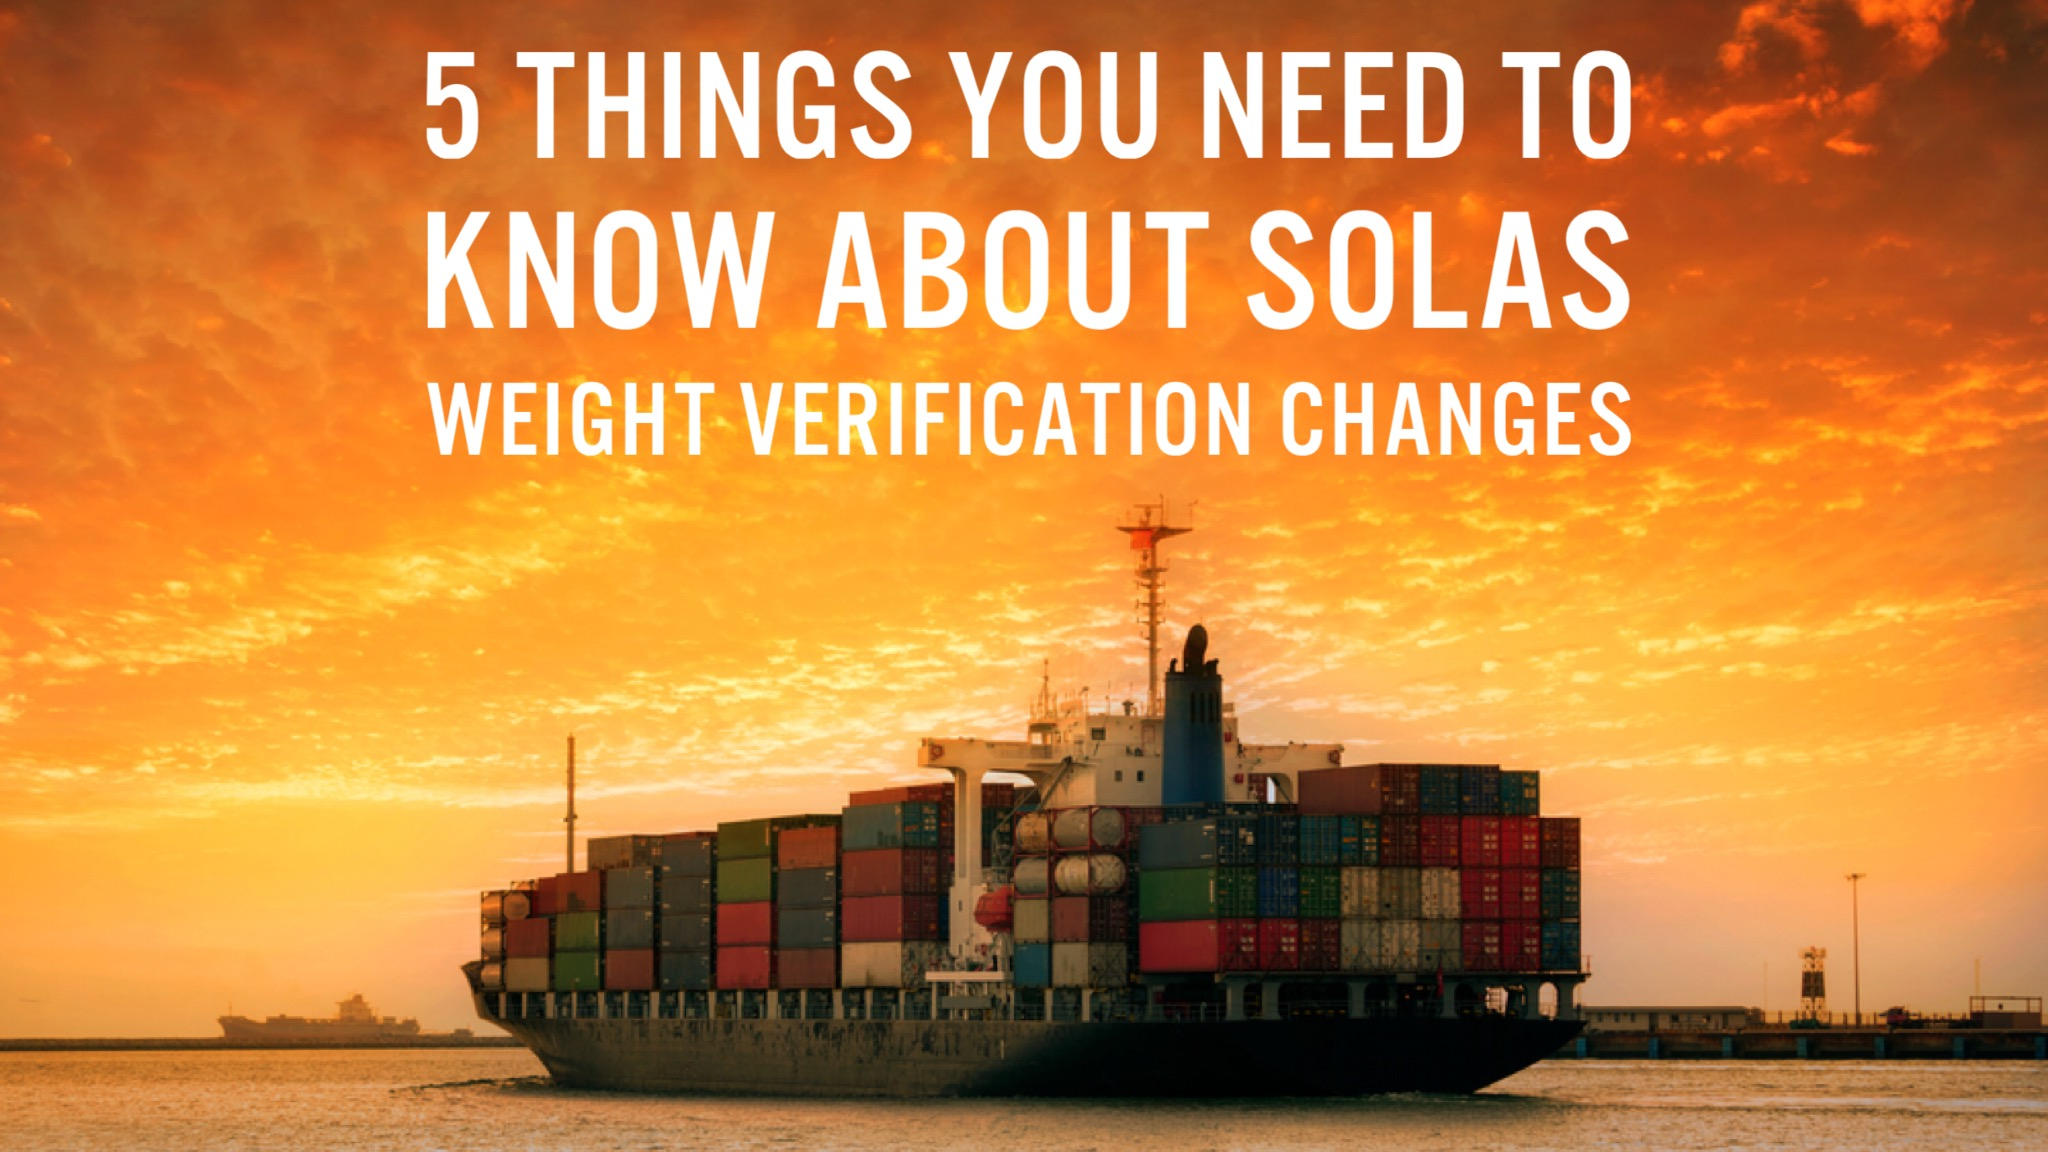 WTA International Logistics Experts - 5 Things You Need To Know About SOLAS Weight Verification Changes